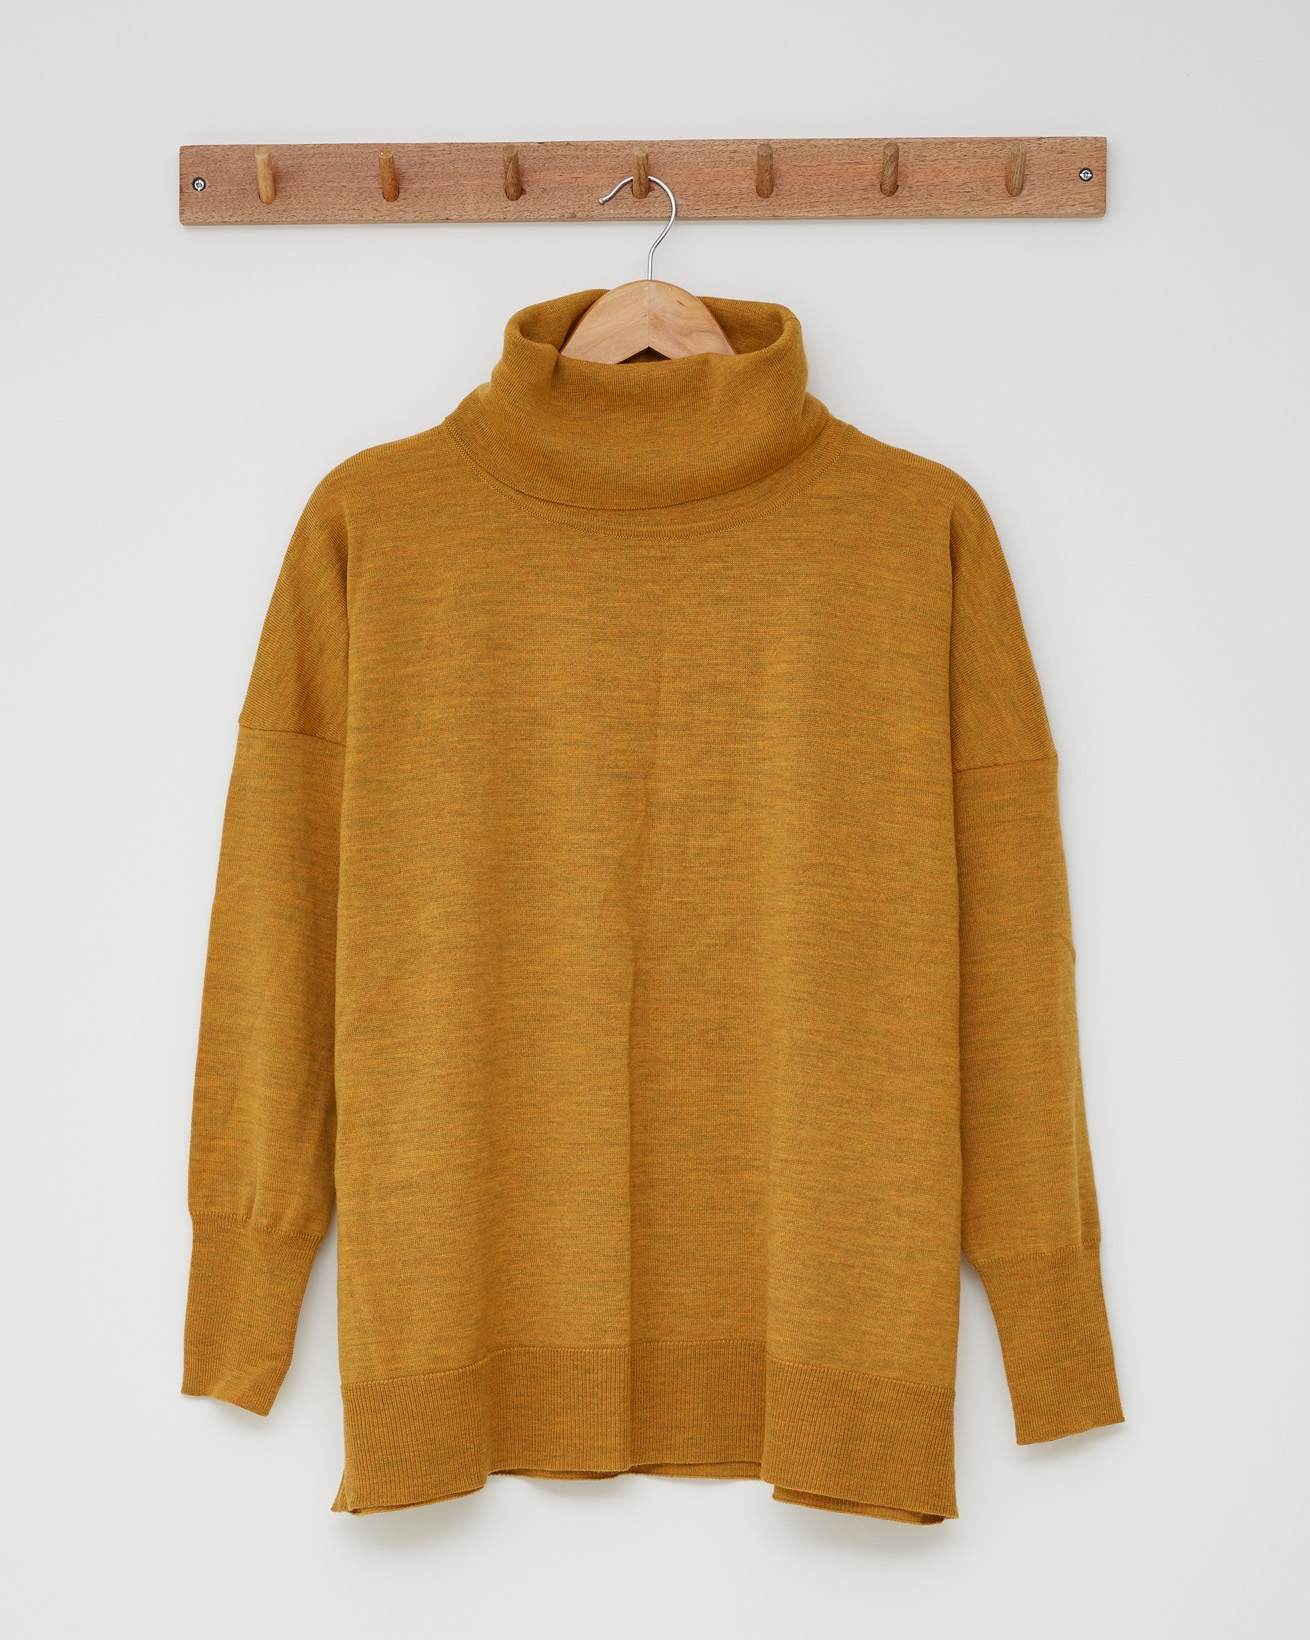 Slouchy Fine Knit Roll Neck Jumper - Size Small - Gorse - 2432